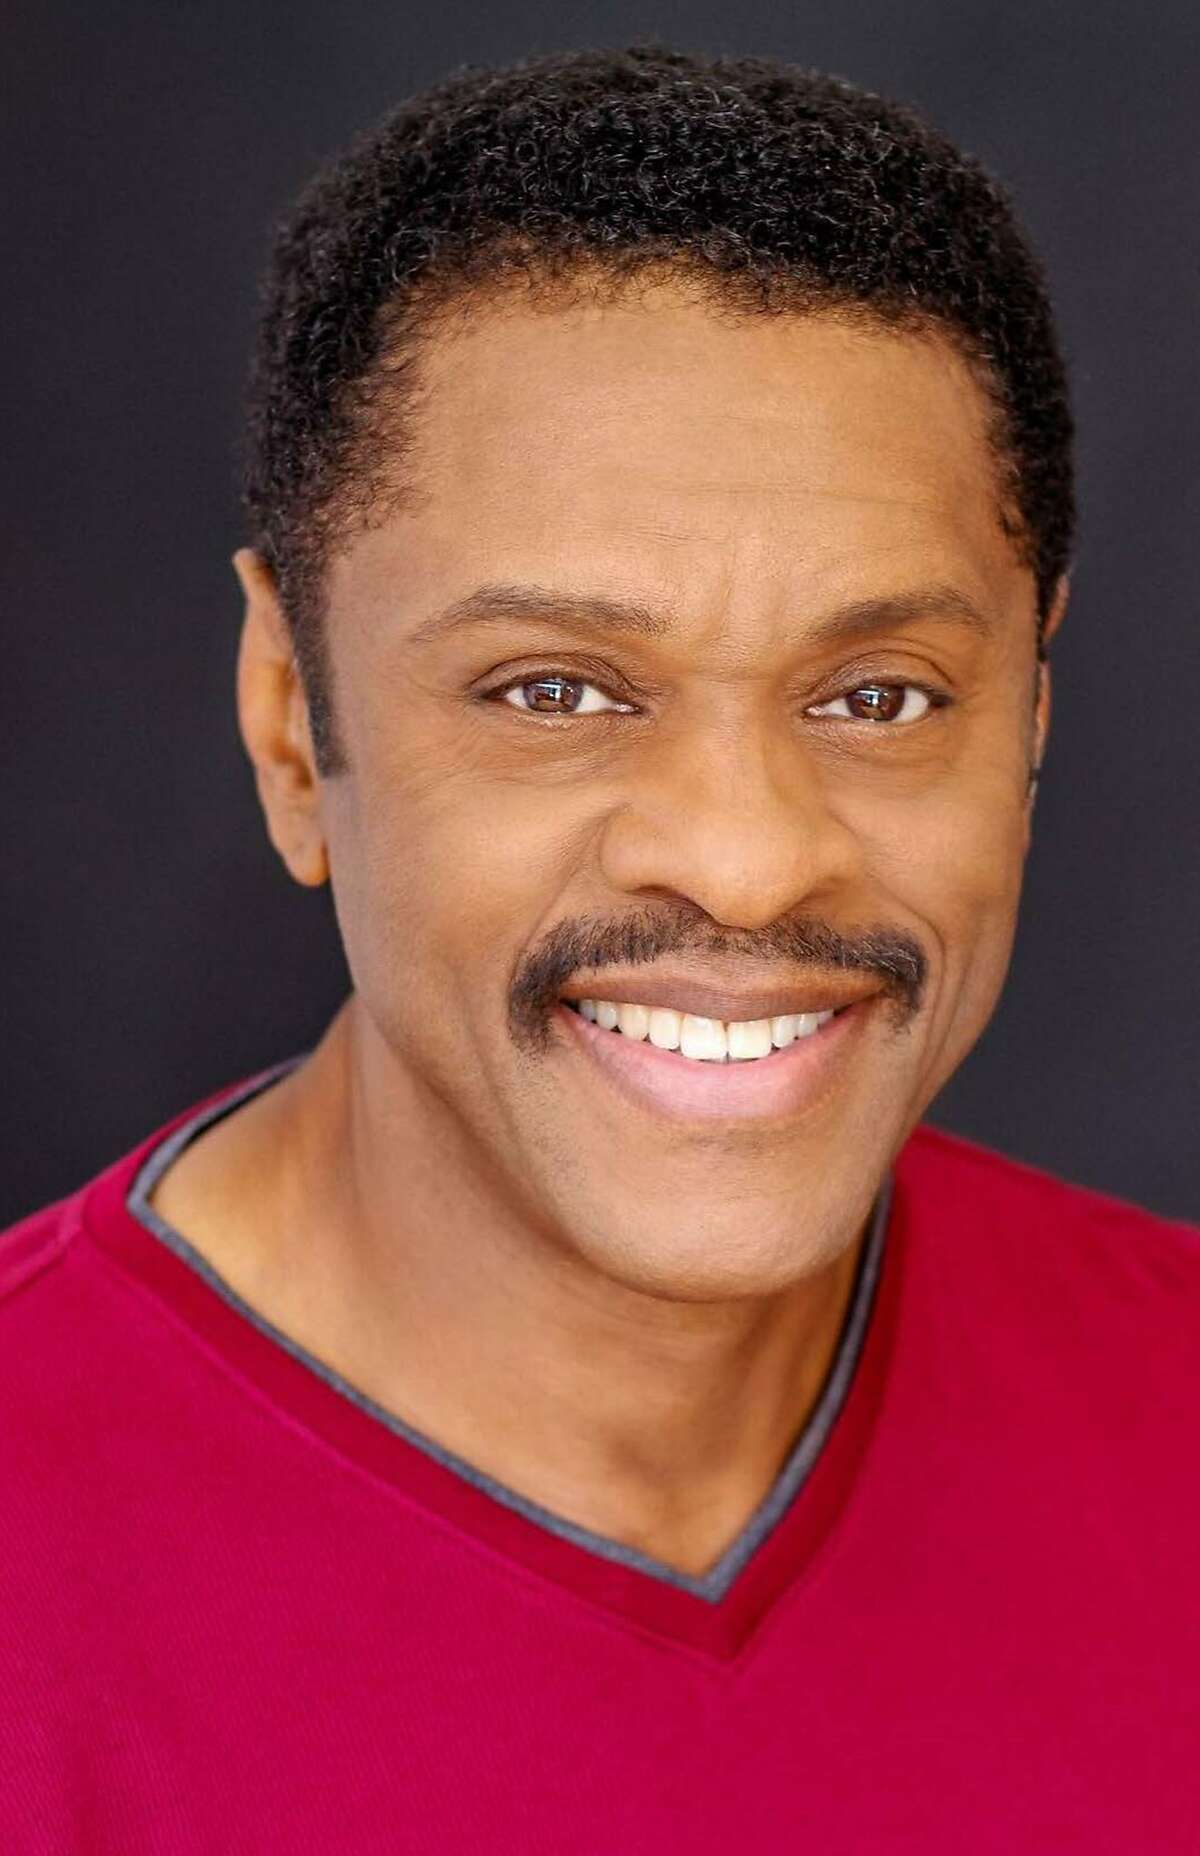 Actor Lawrence Hilton-Jacobs played Noah in the groundbreaking 1977 miniseries